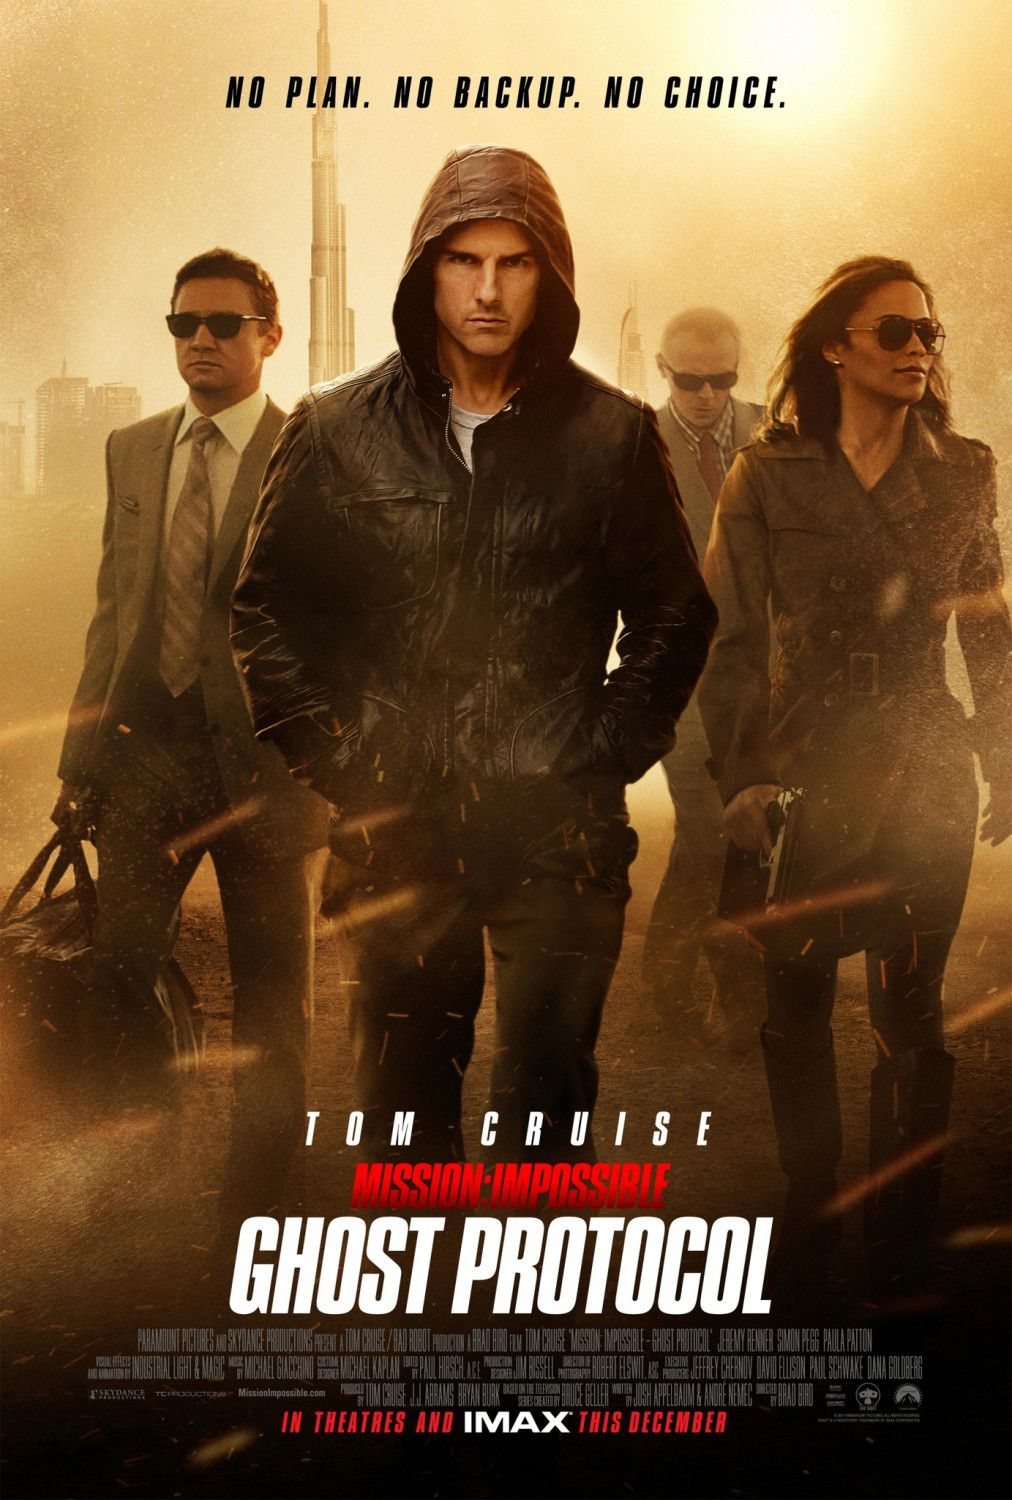 Mission Impossible - Ghost Protocol - Tom Cruise